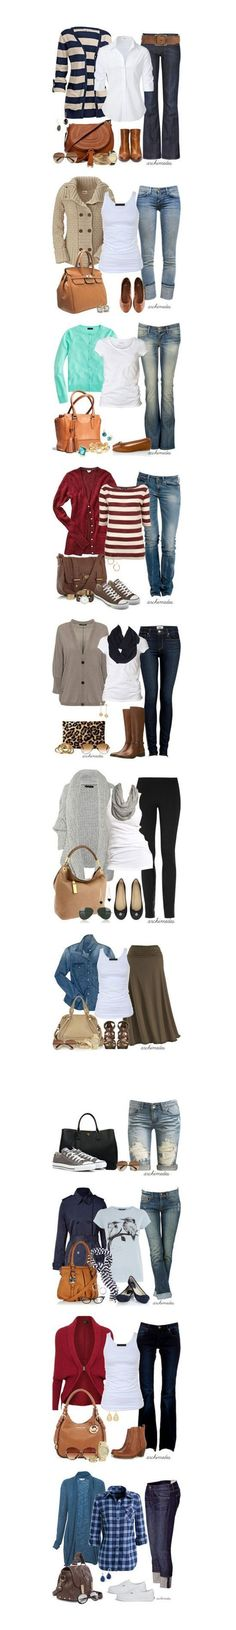 15 Casual Winter Fashion Trends Looks 2013 For Girls